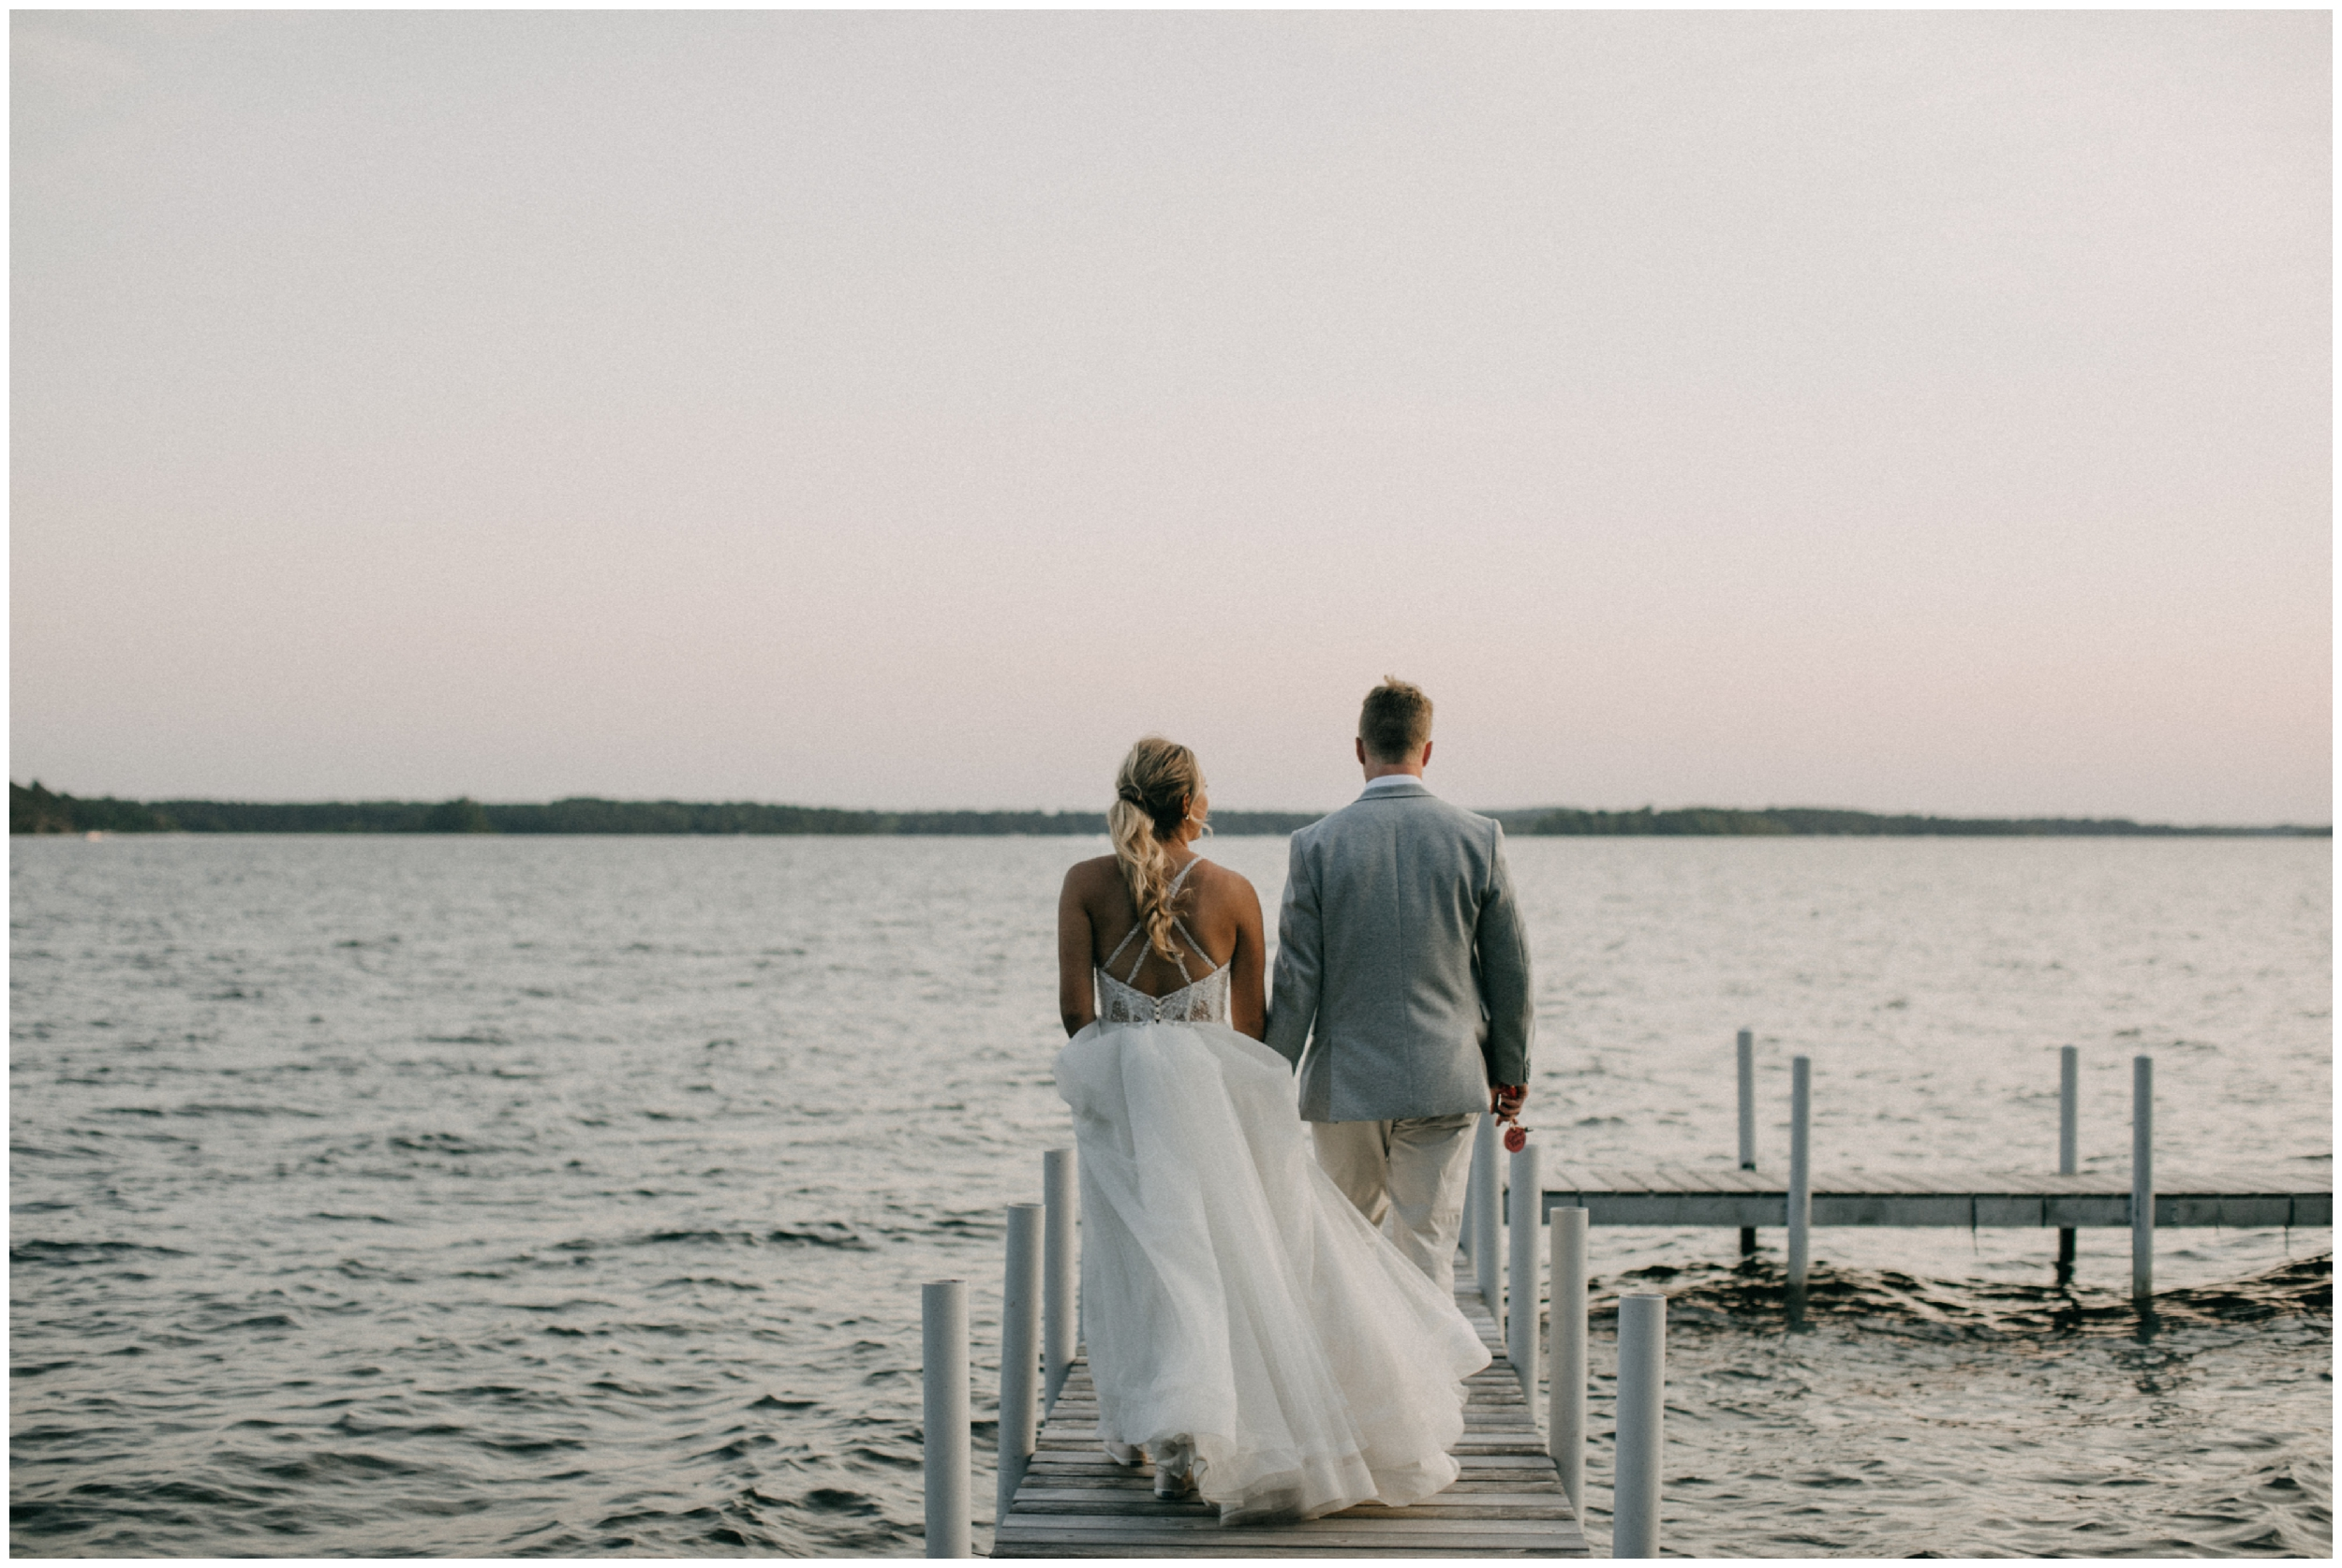 Summer camp wedding at sunset on Crosslake photographed by Britt DeZeeuw